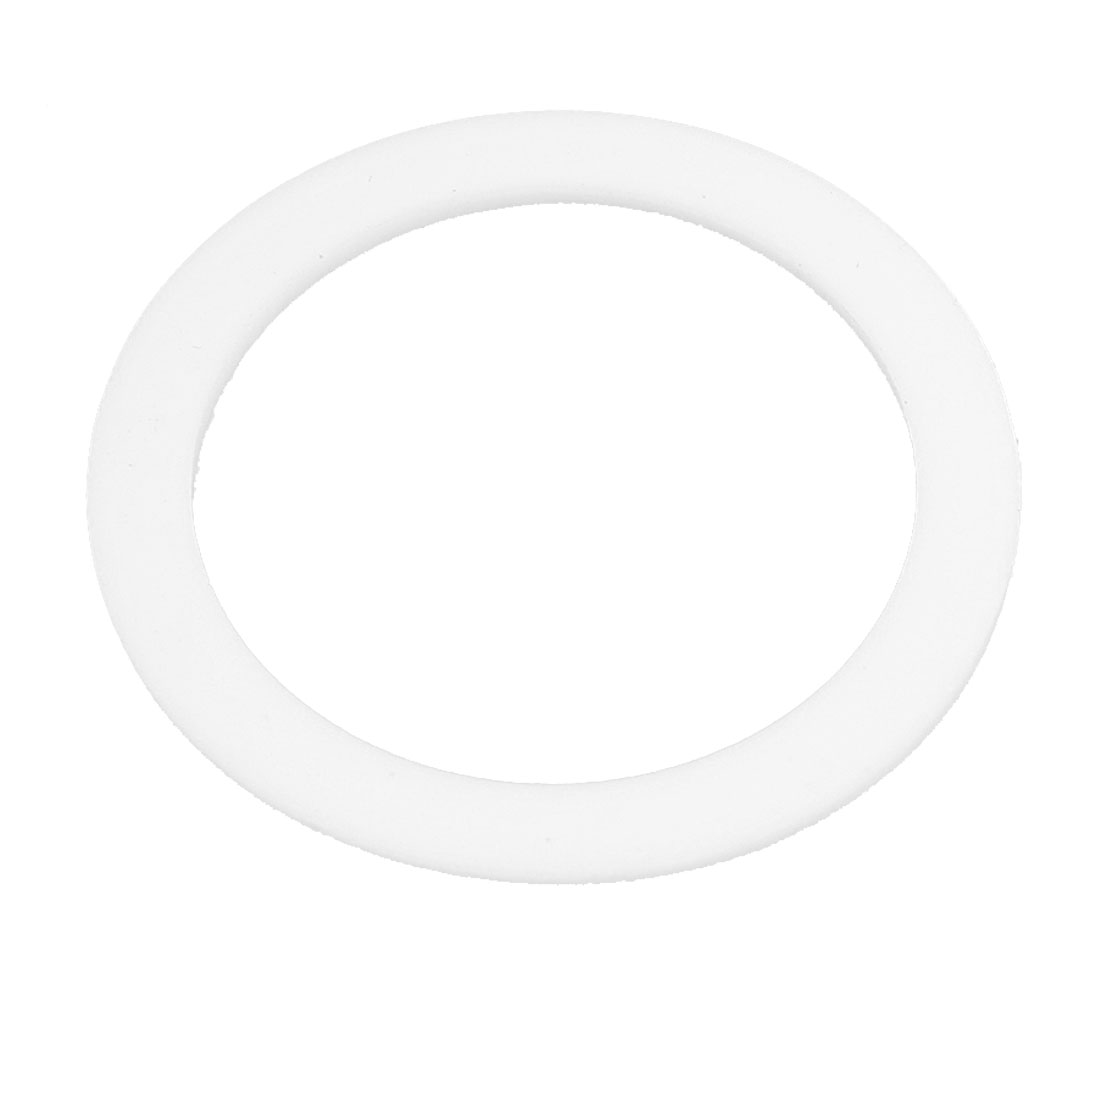 35mm x 45mm x 2mm Flat PTFE Gasket Washer White